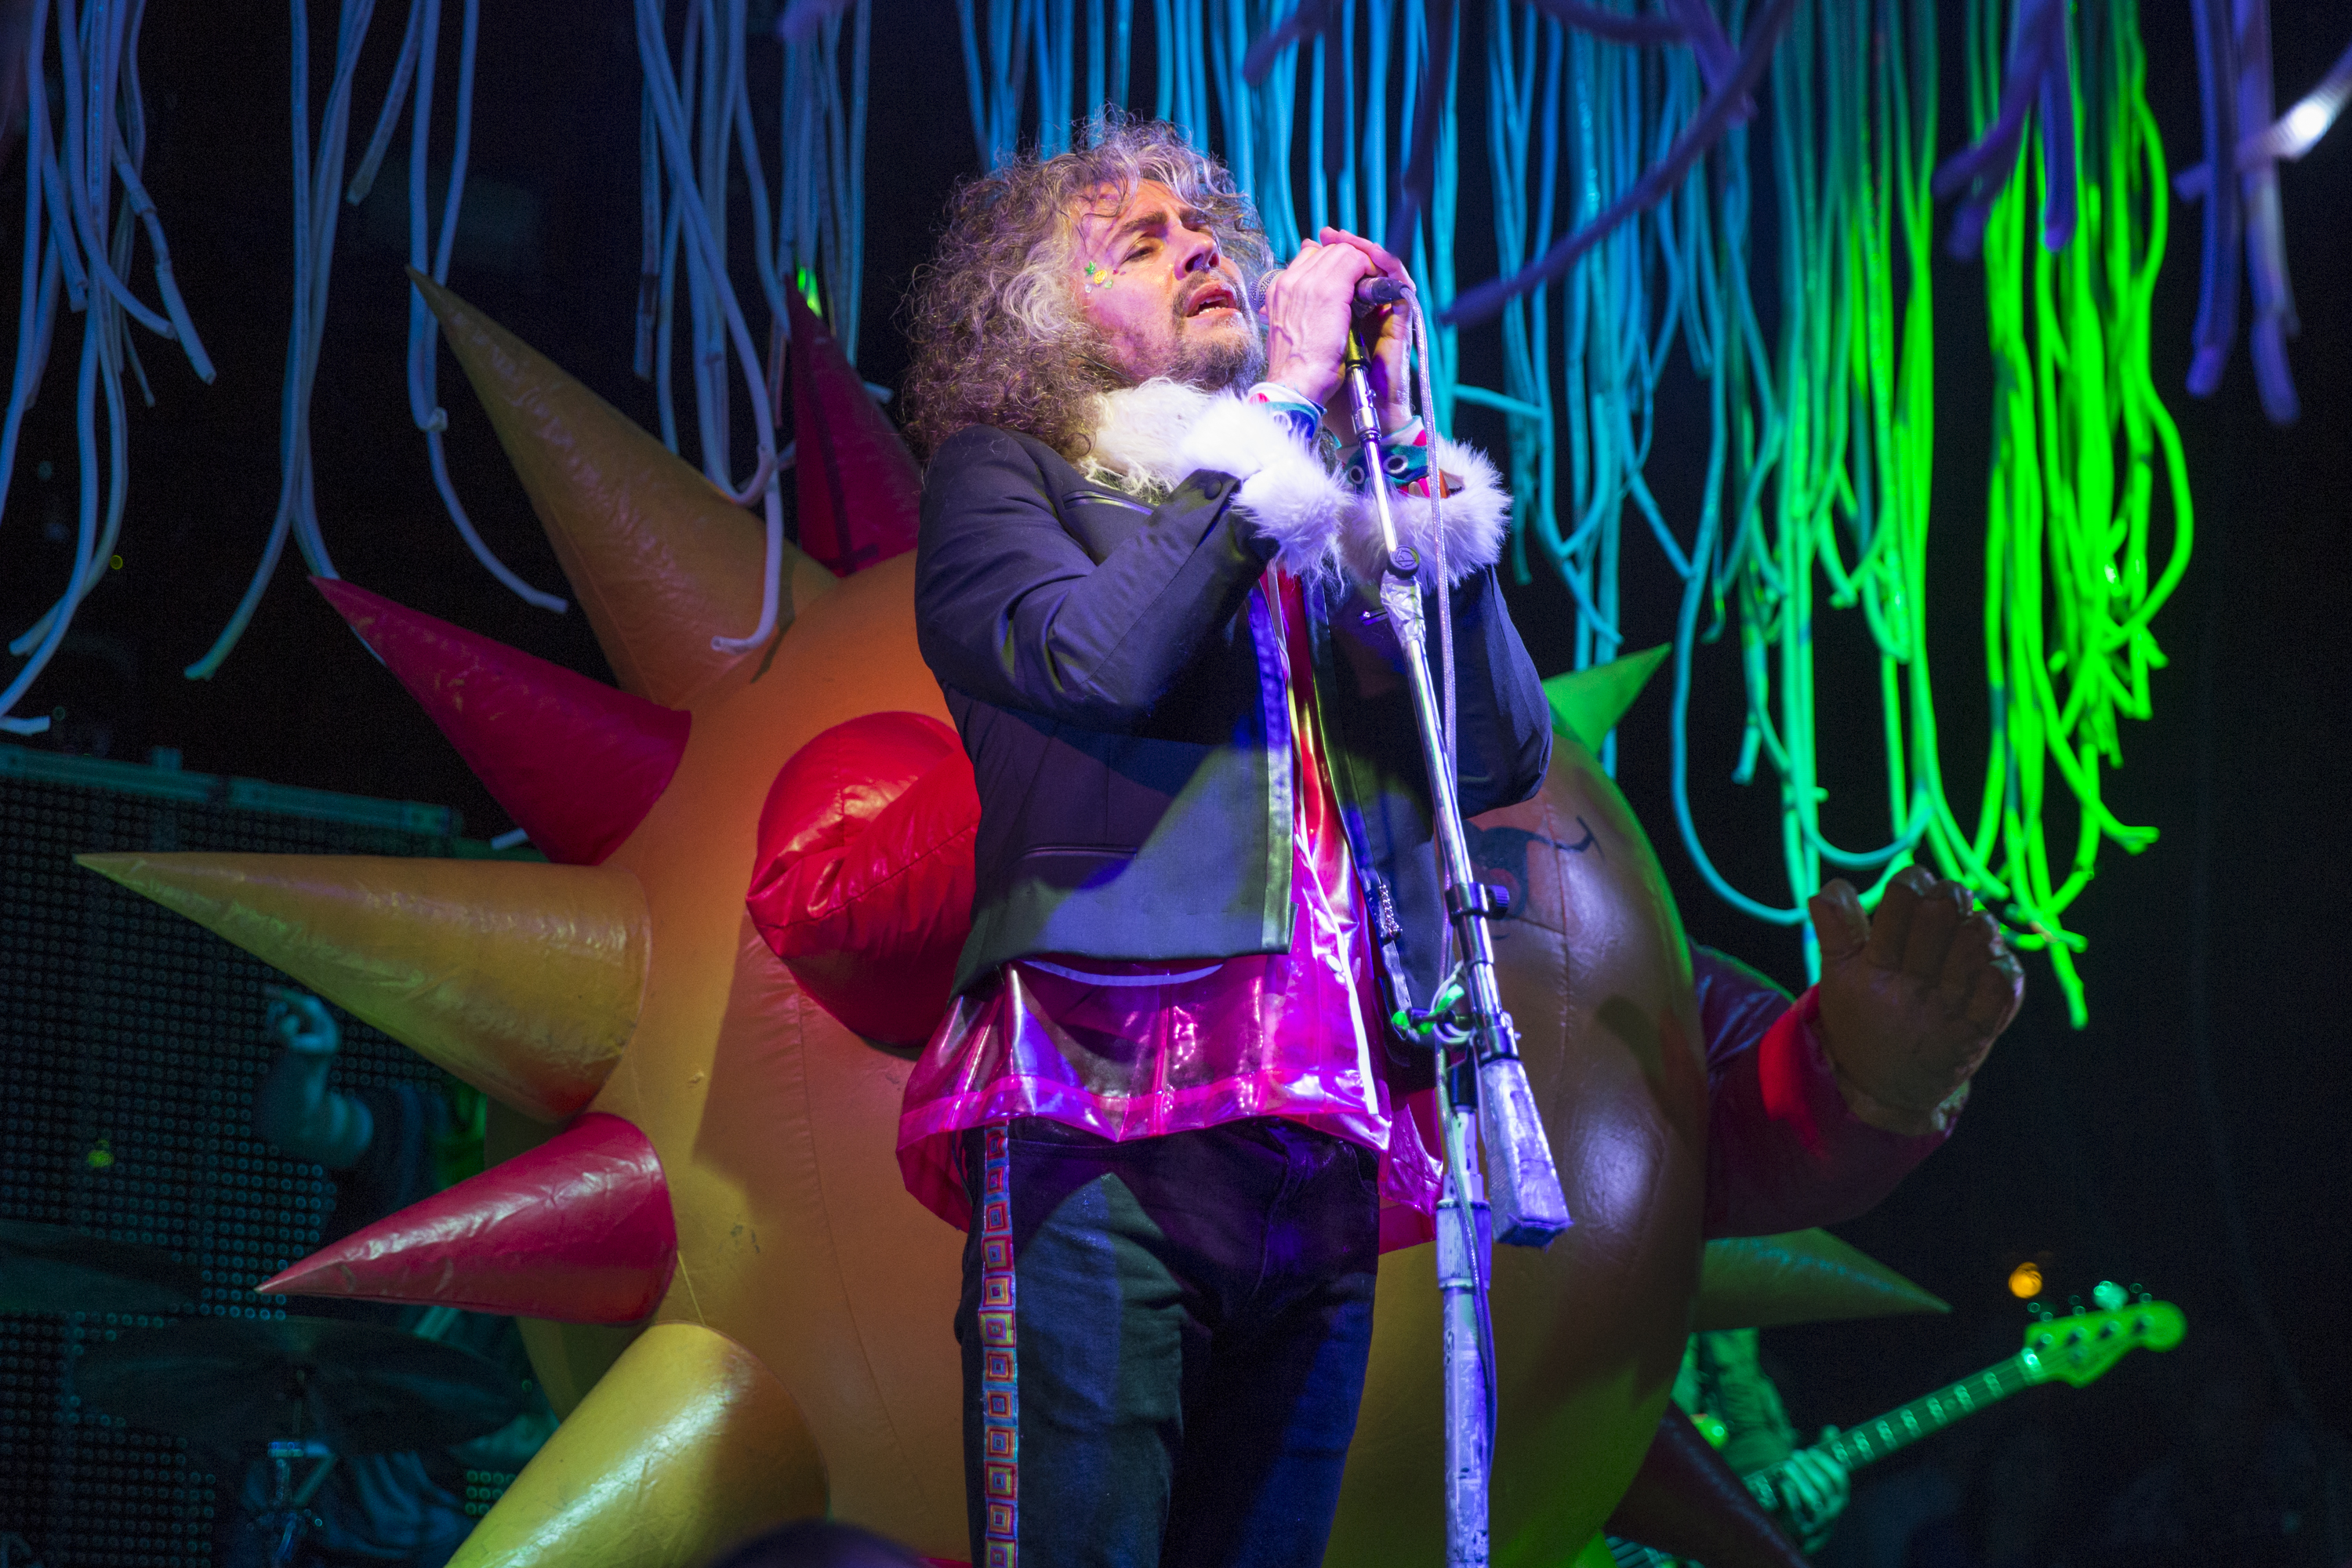 SAN ANTONIO, TEXAS - APRIL 09:  Musician/vocalist Wayne Coyne of The Flaming Lips performs onstage during the Maverick Music Festival at Maverick Plaza on April 9, 2016 in San Antonio, Texas.  (Photo by Rick Kern/WireImage)